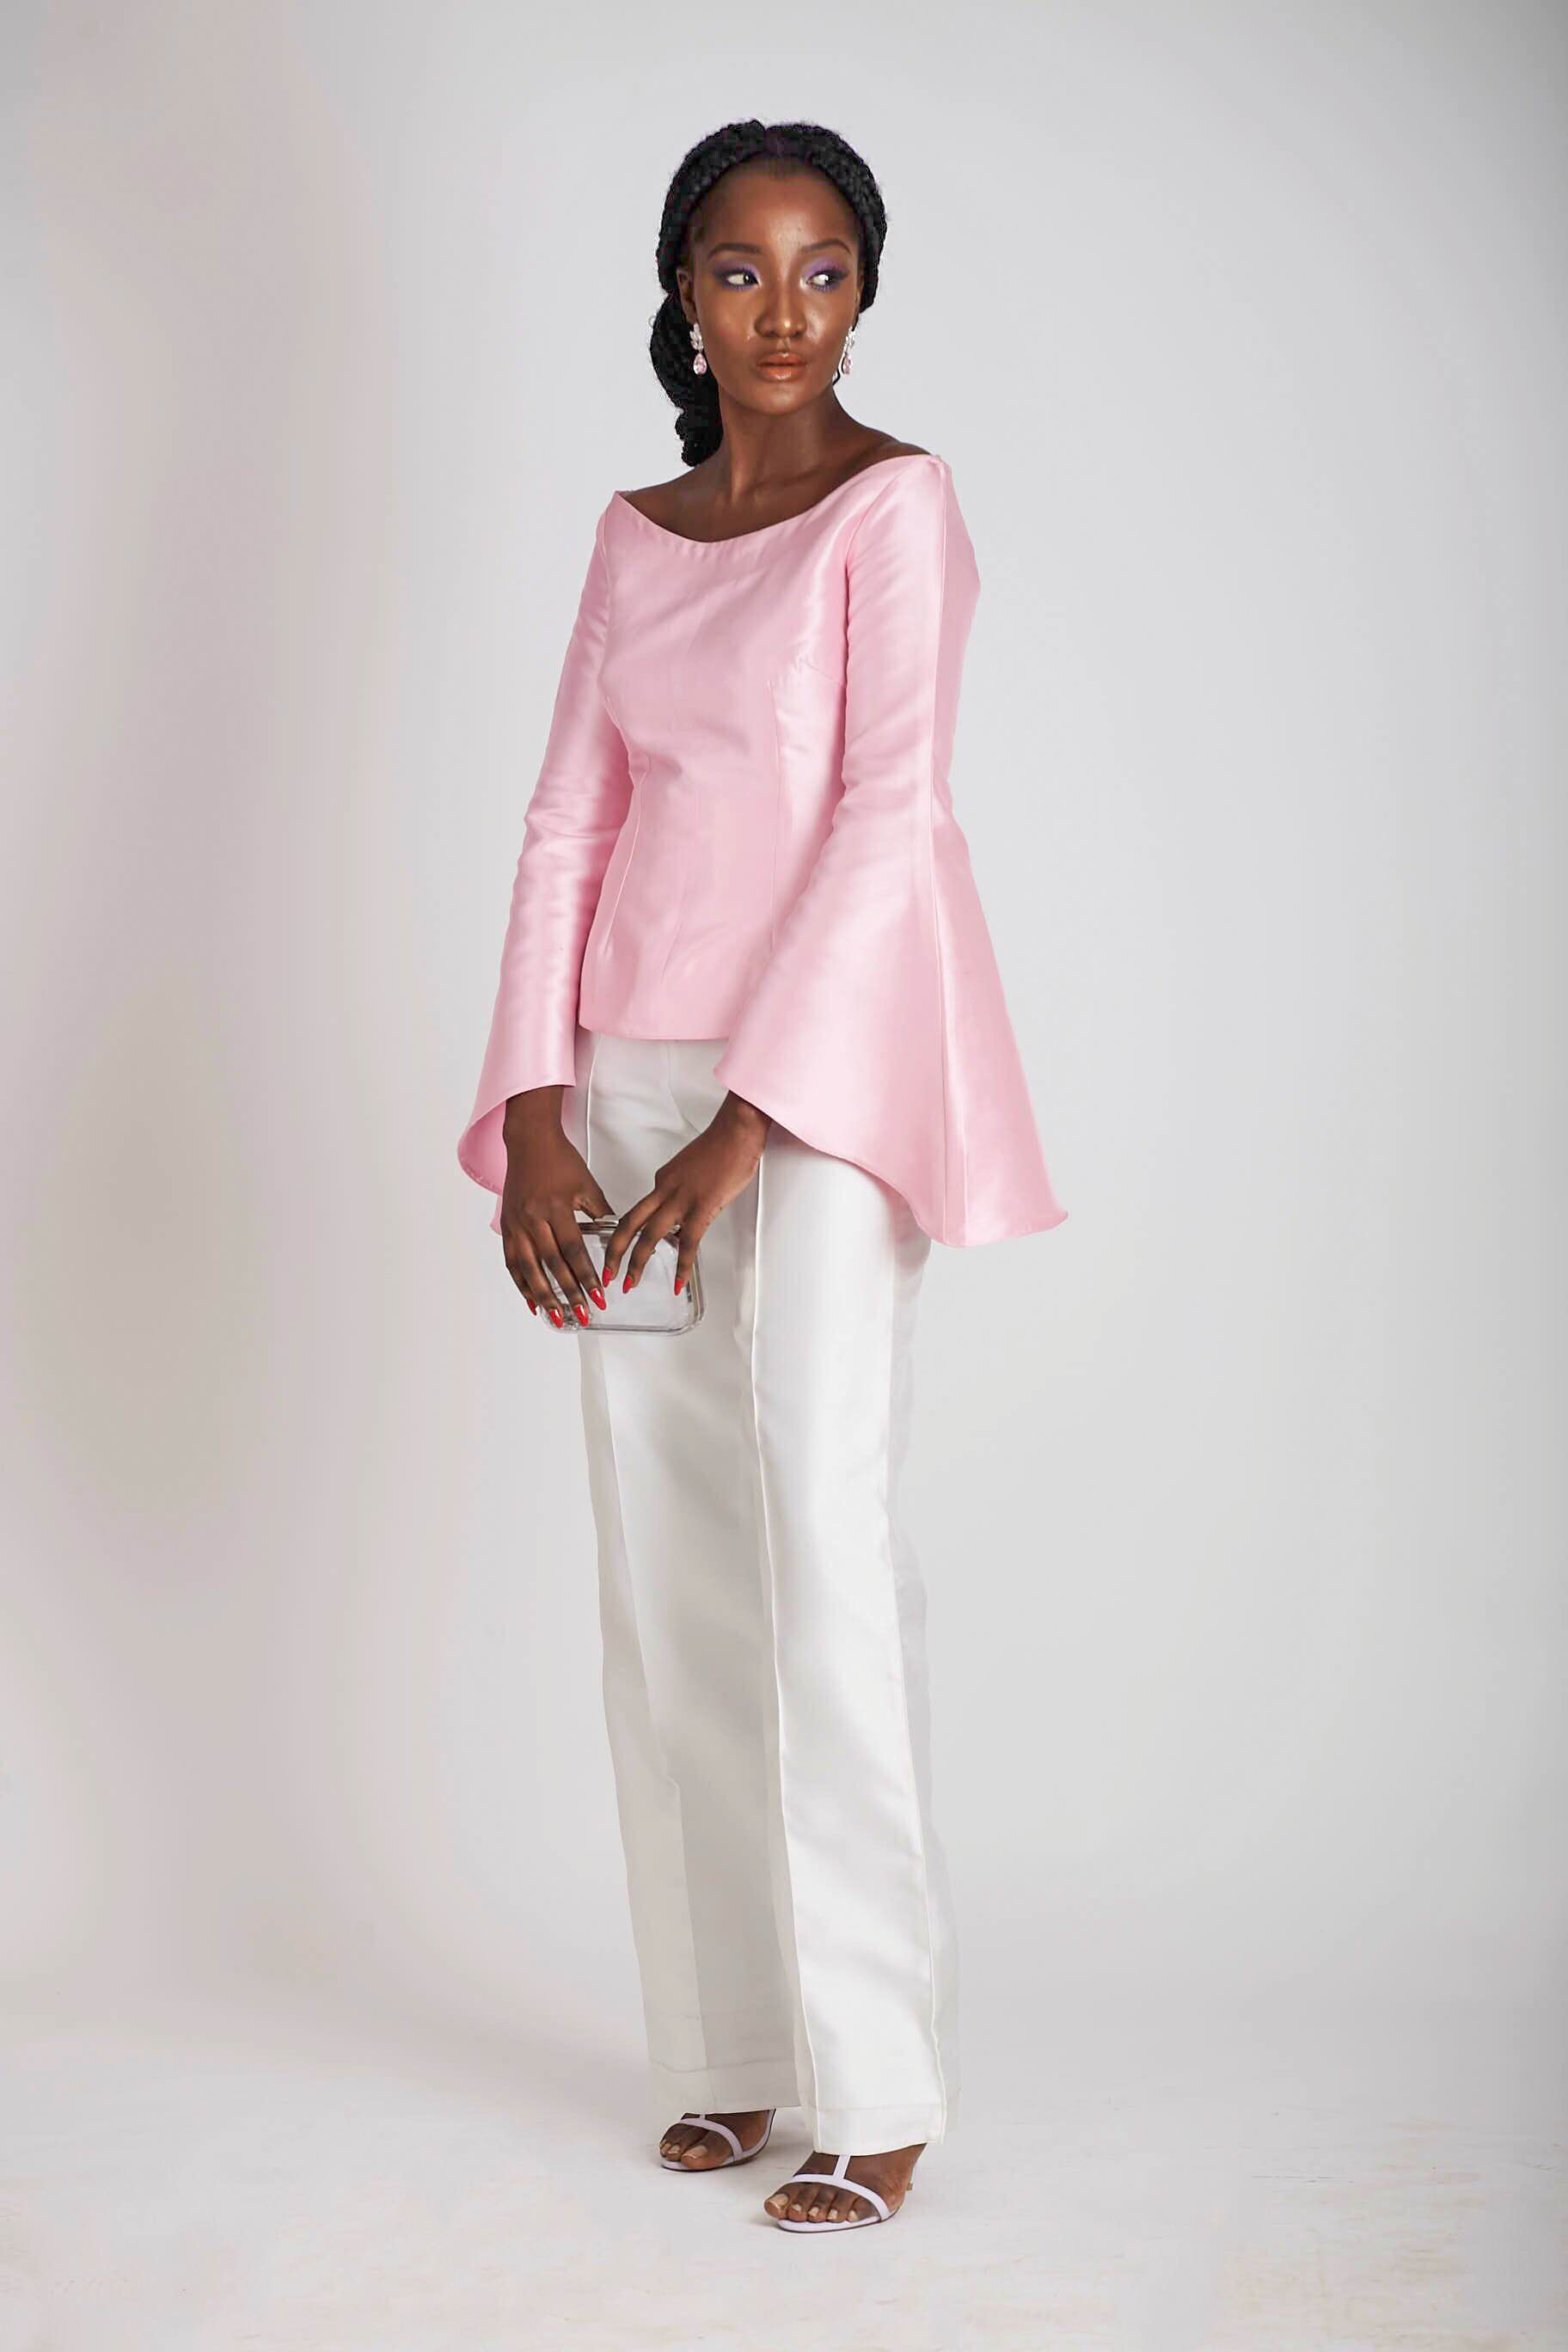 Imad Eduso - BN Style - Collection Lookbook - BellaNaija.com 01